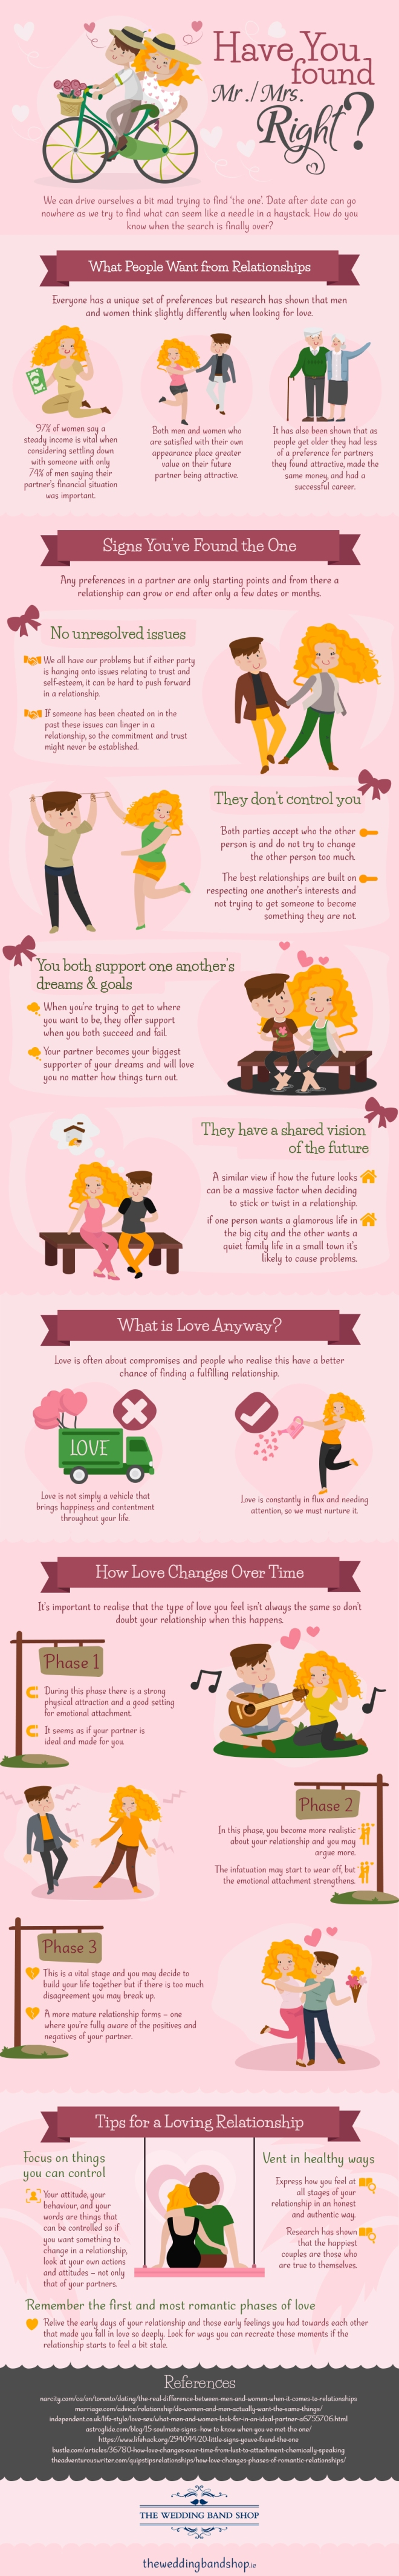 Have You Found Mr.Mrs. Right! (Infographic).jpg